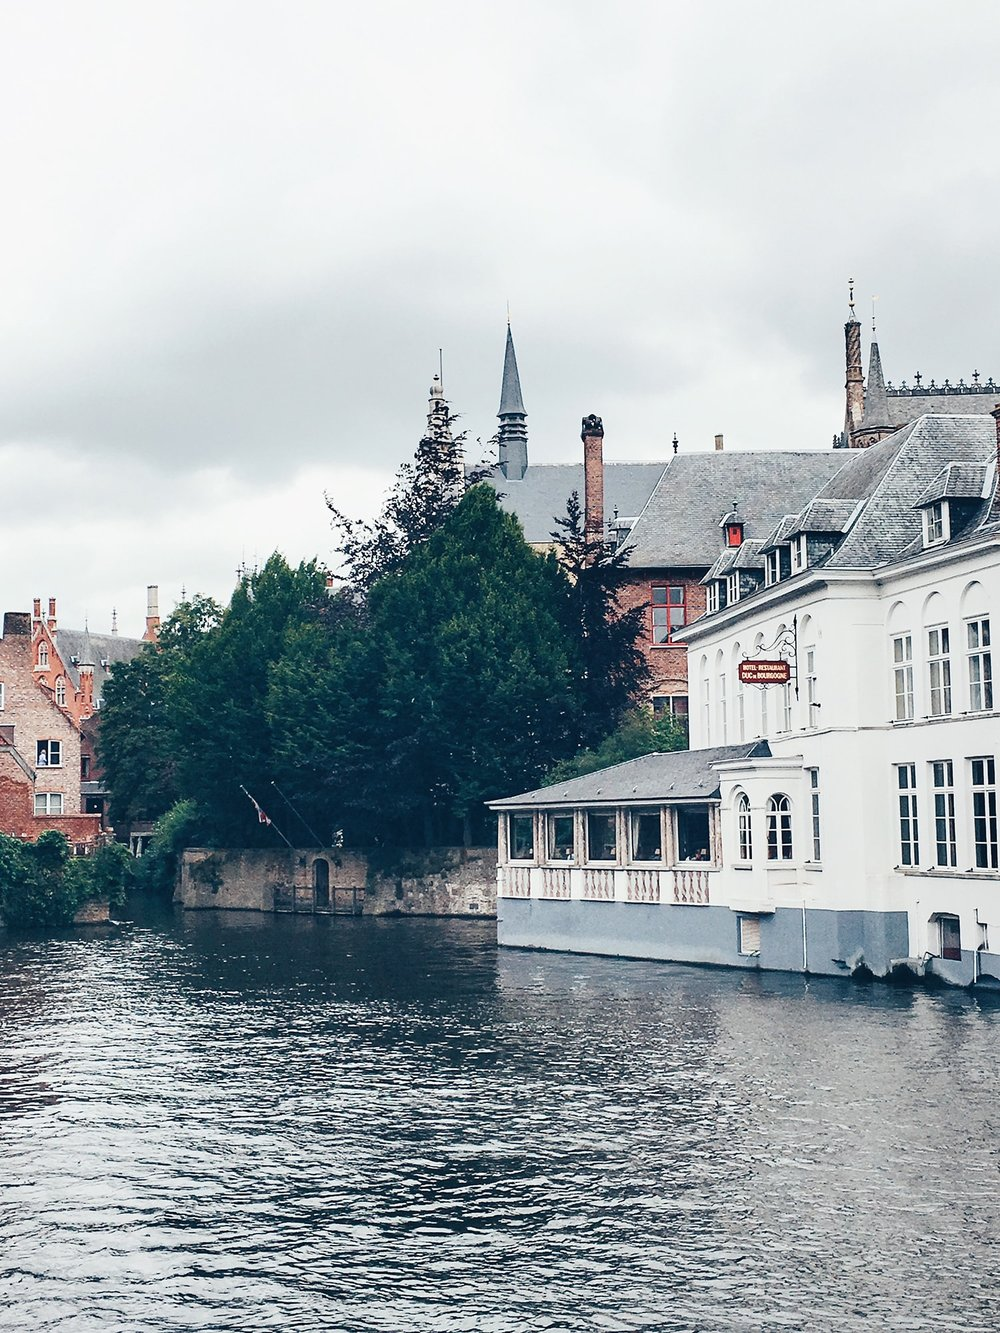 The Groeninge Museum (on the right) is said to house Bruges' best art collection (Bruges, Belgium)